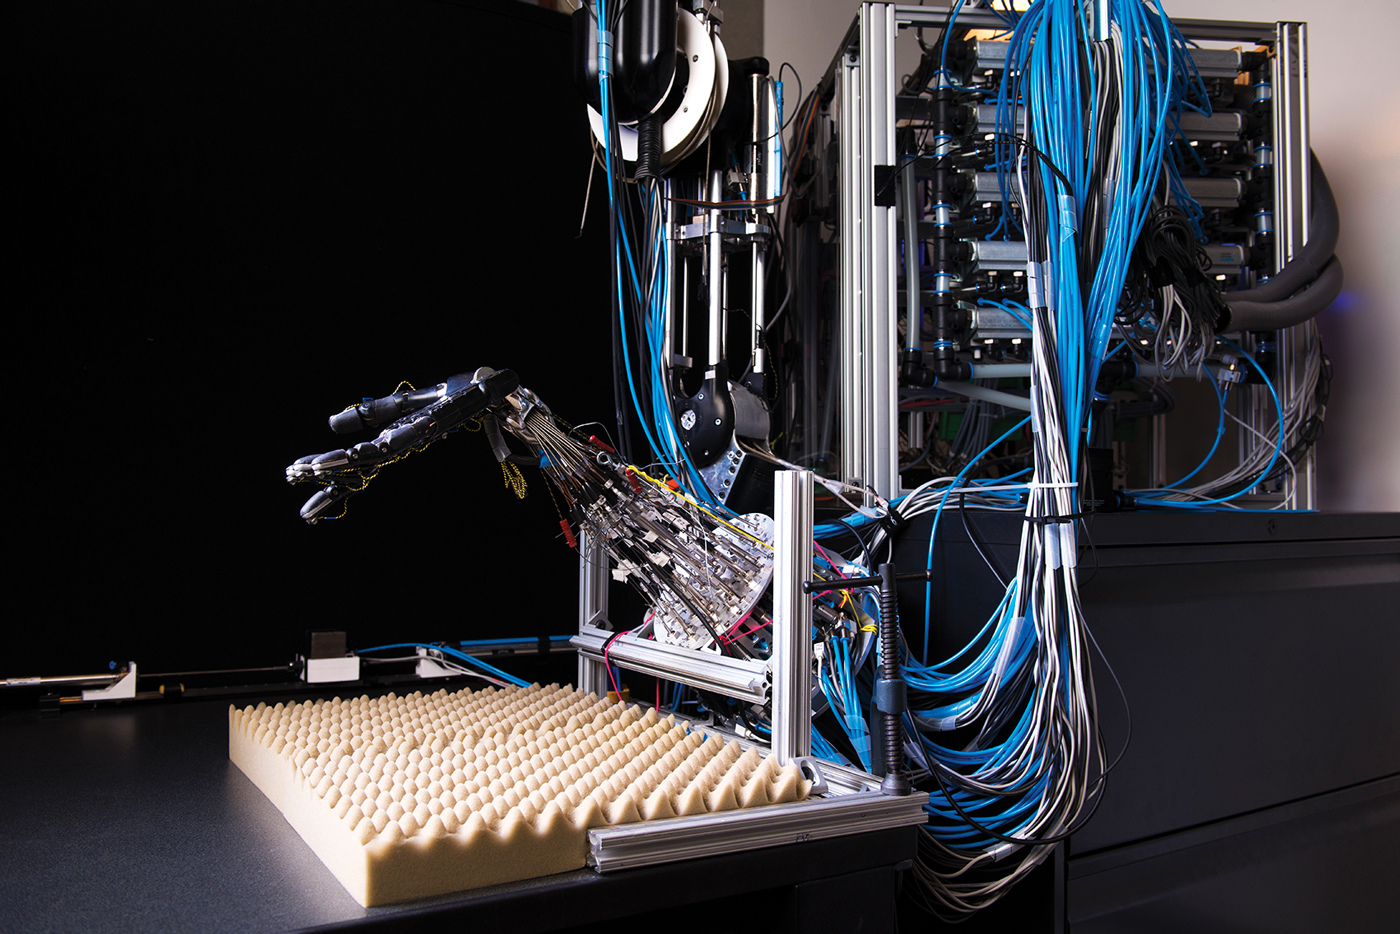 Sergey Levine has demonstrated that his algorithms can help a robotic arm teach itself how to manipulate various objects.